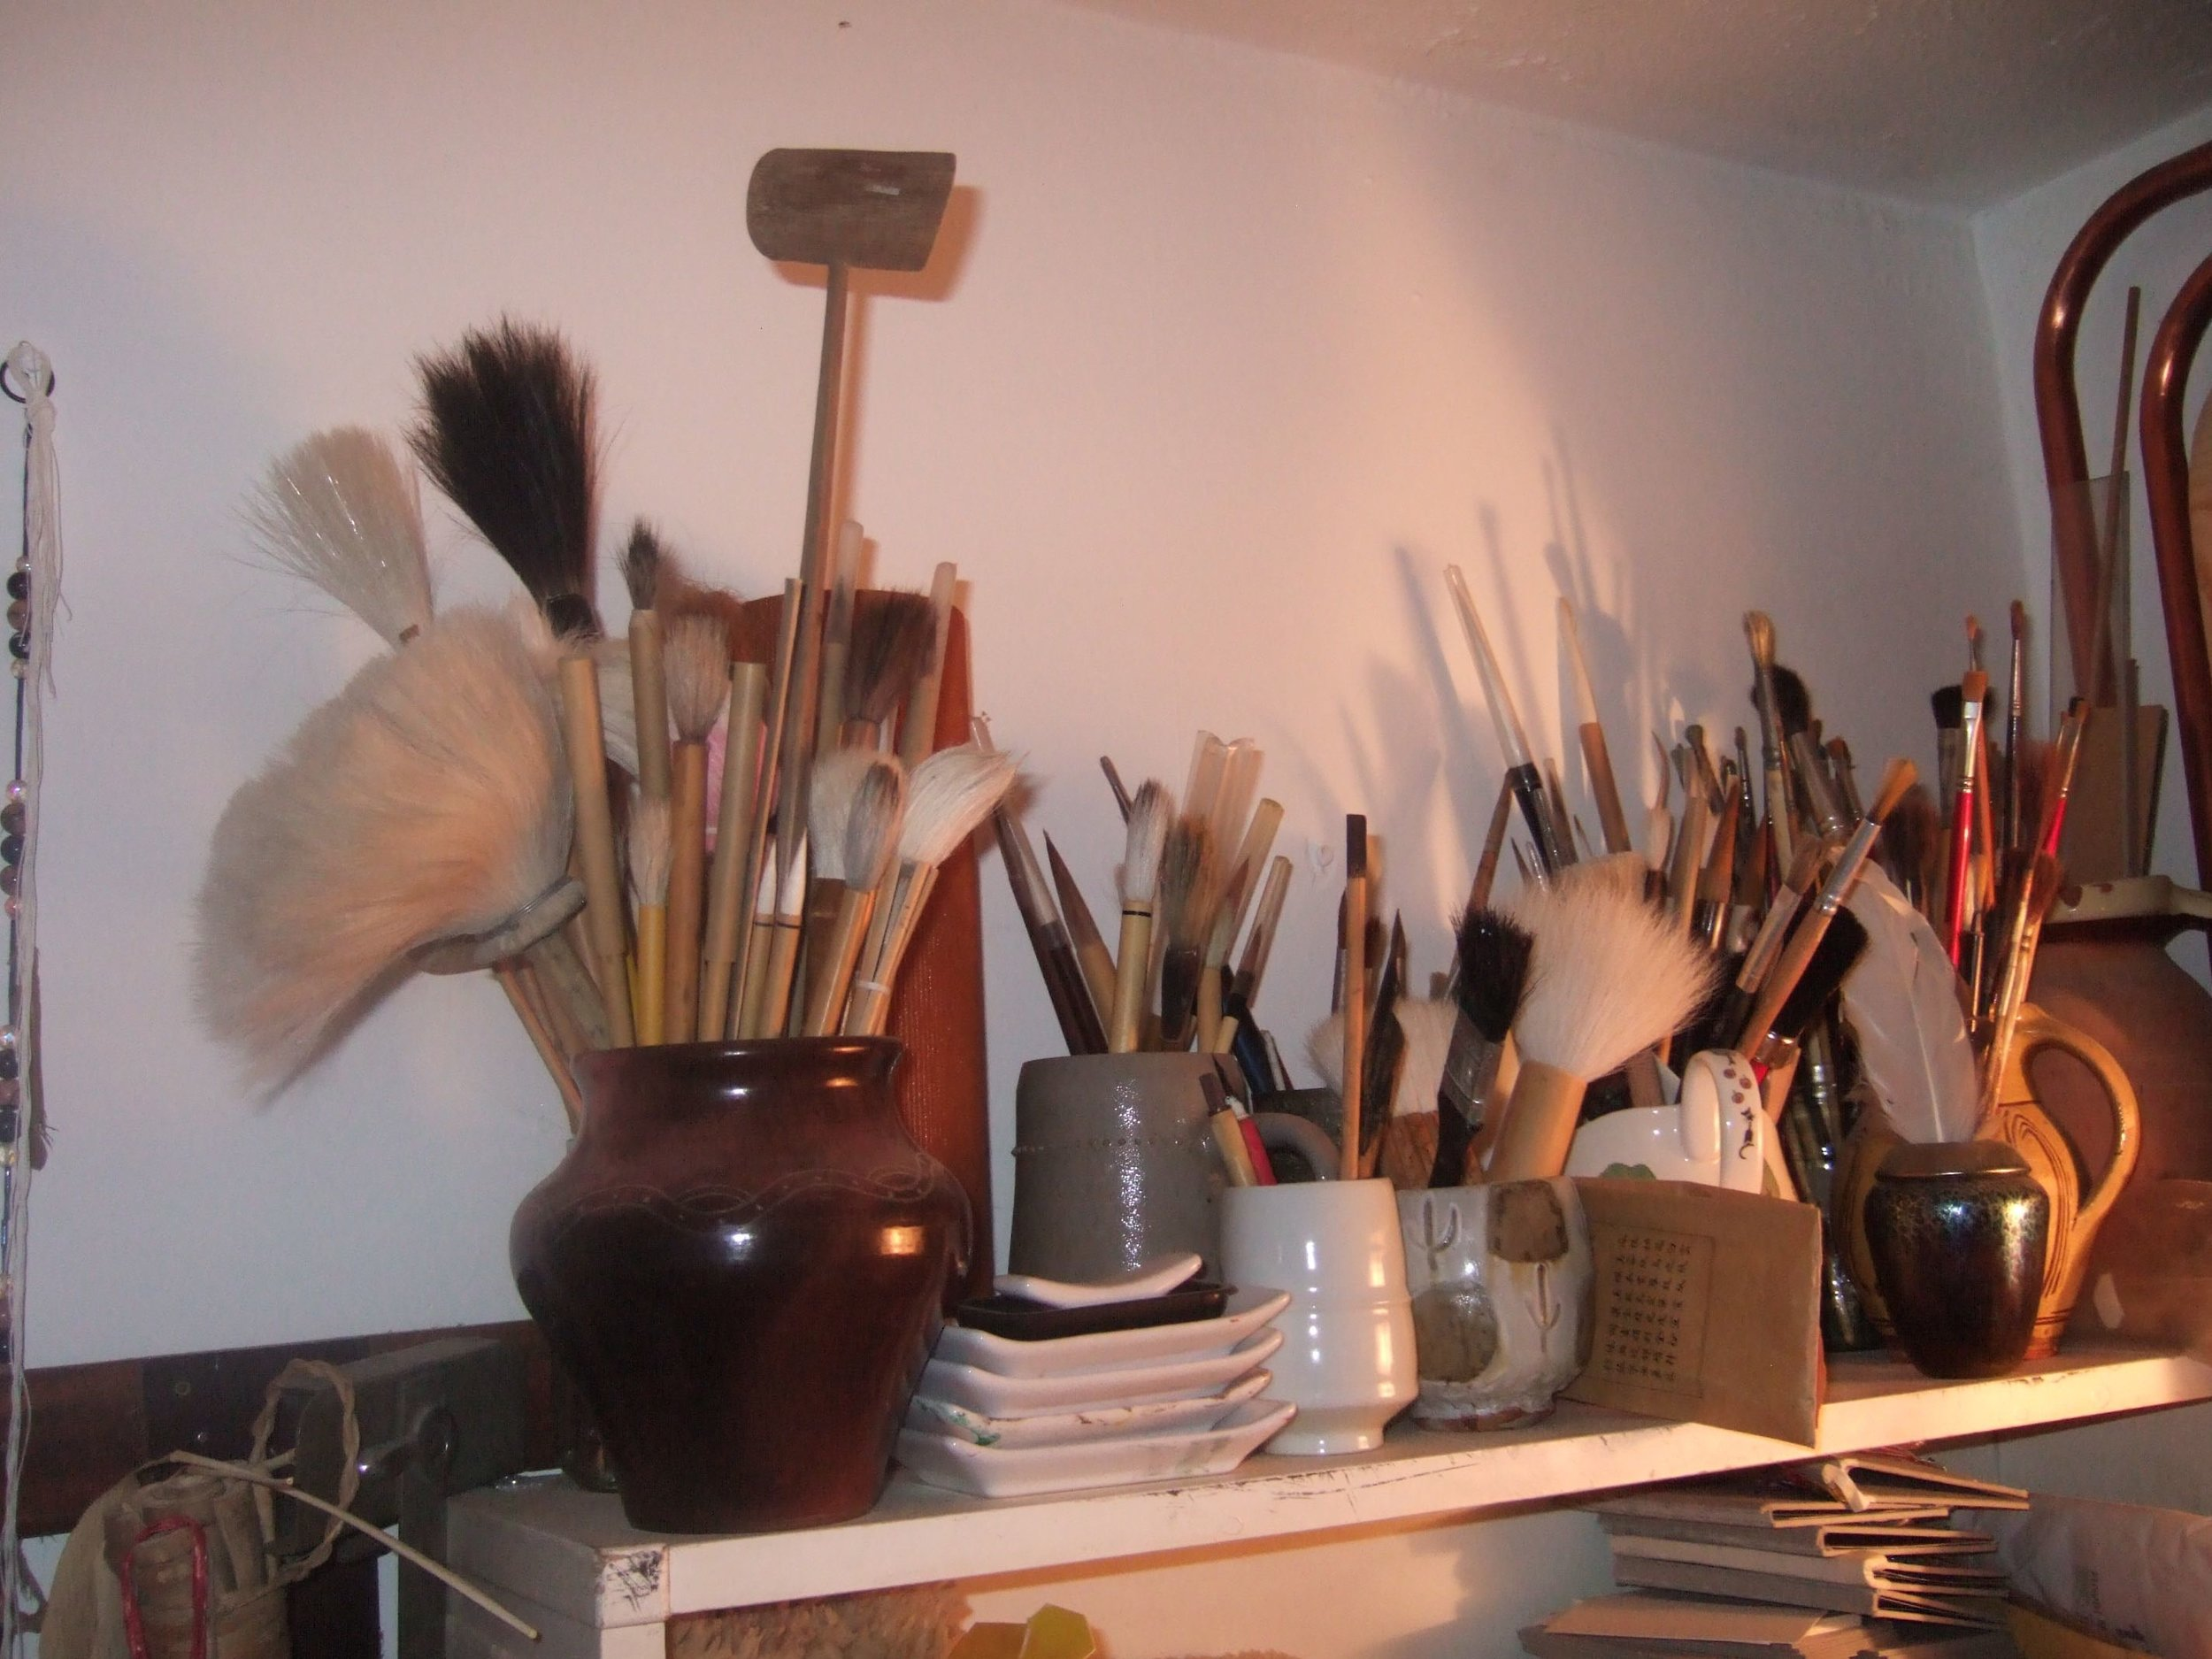 susie-koren-paintbrushes.jpg